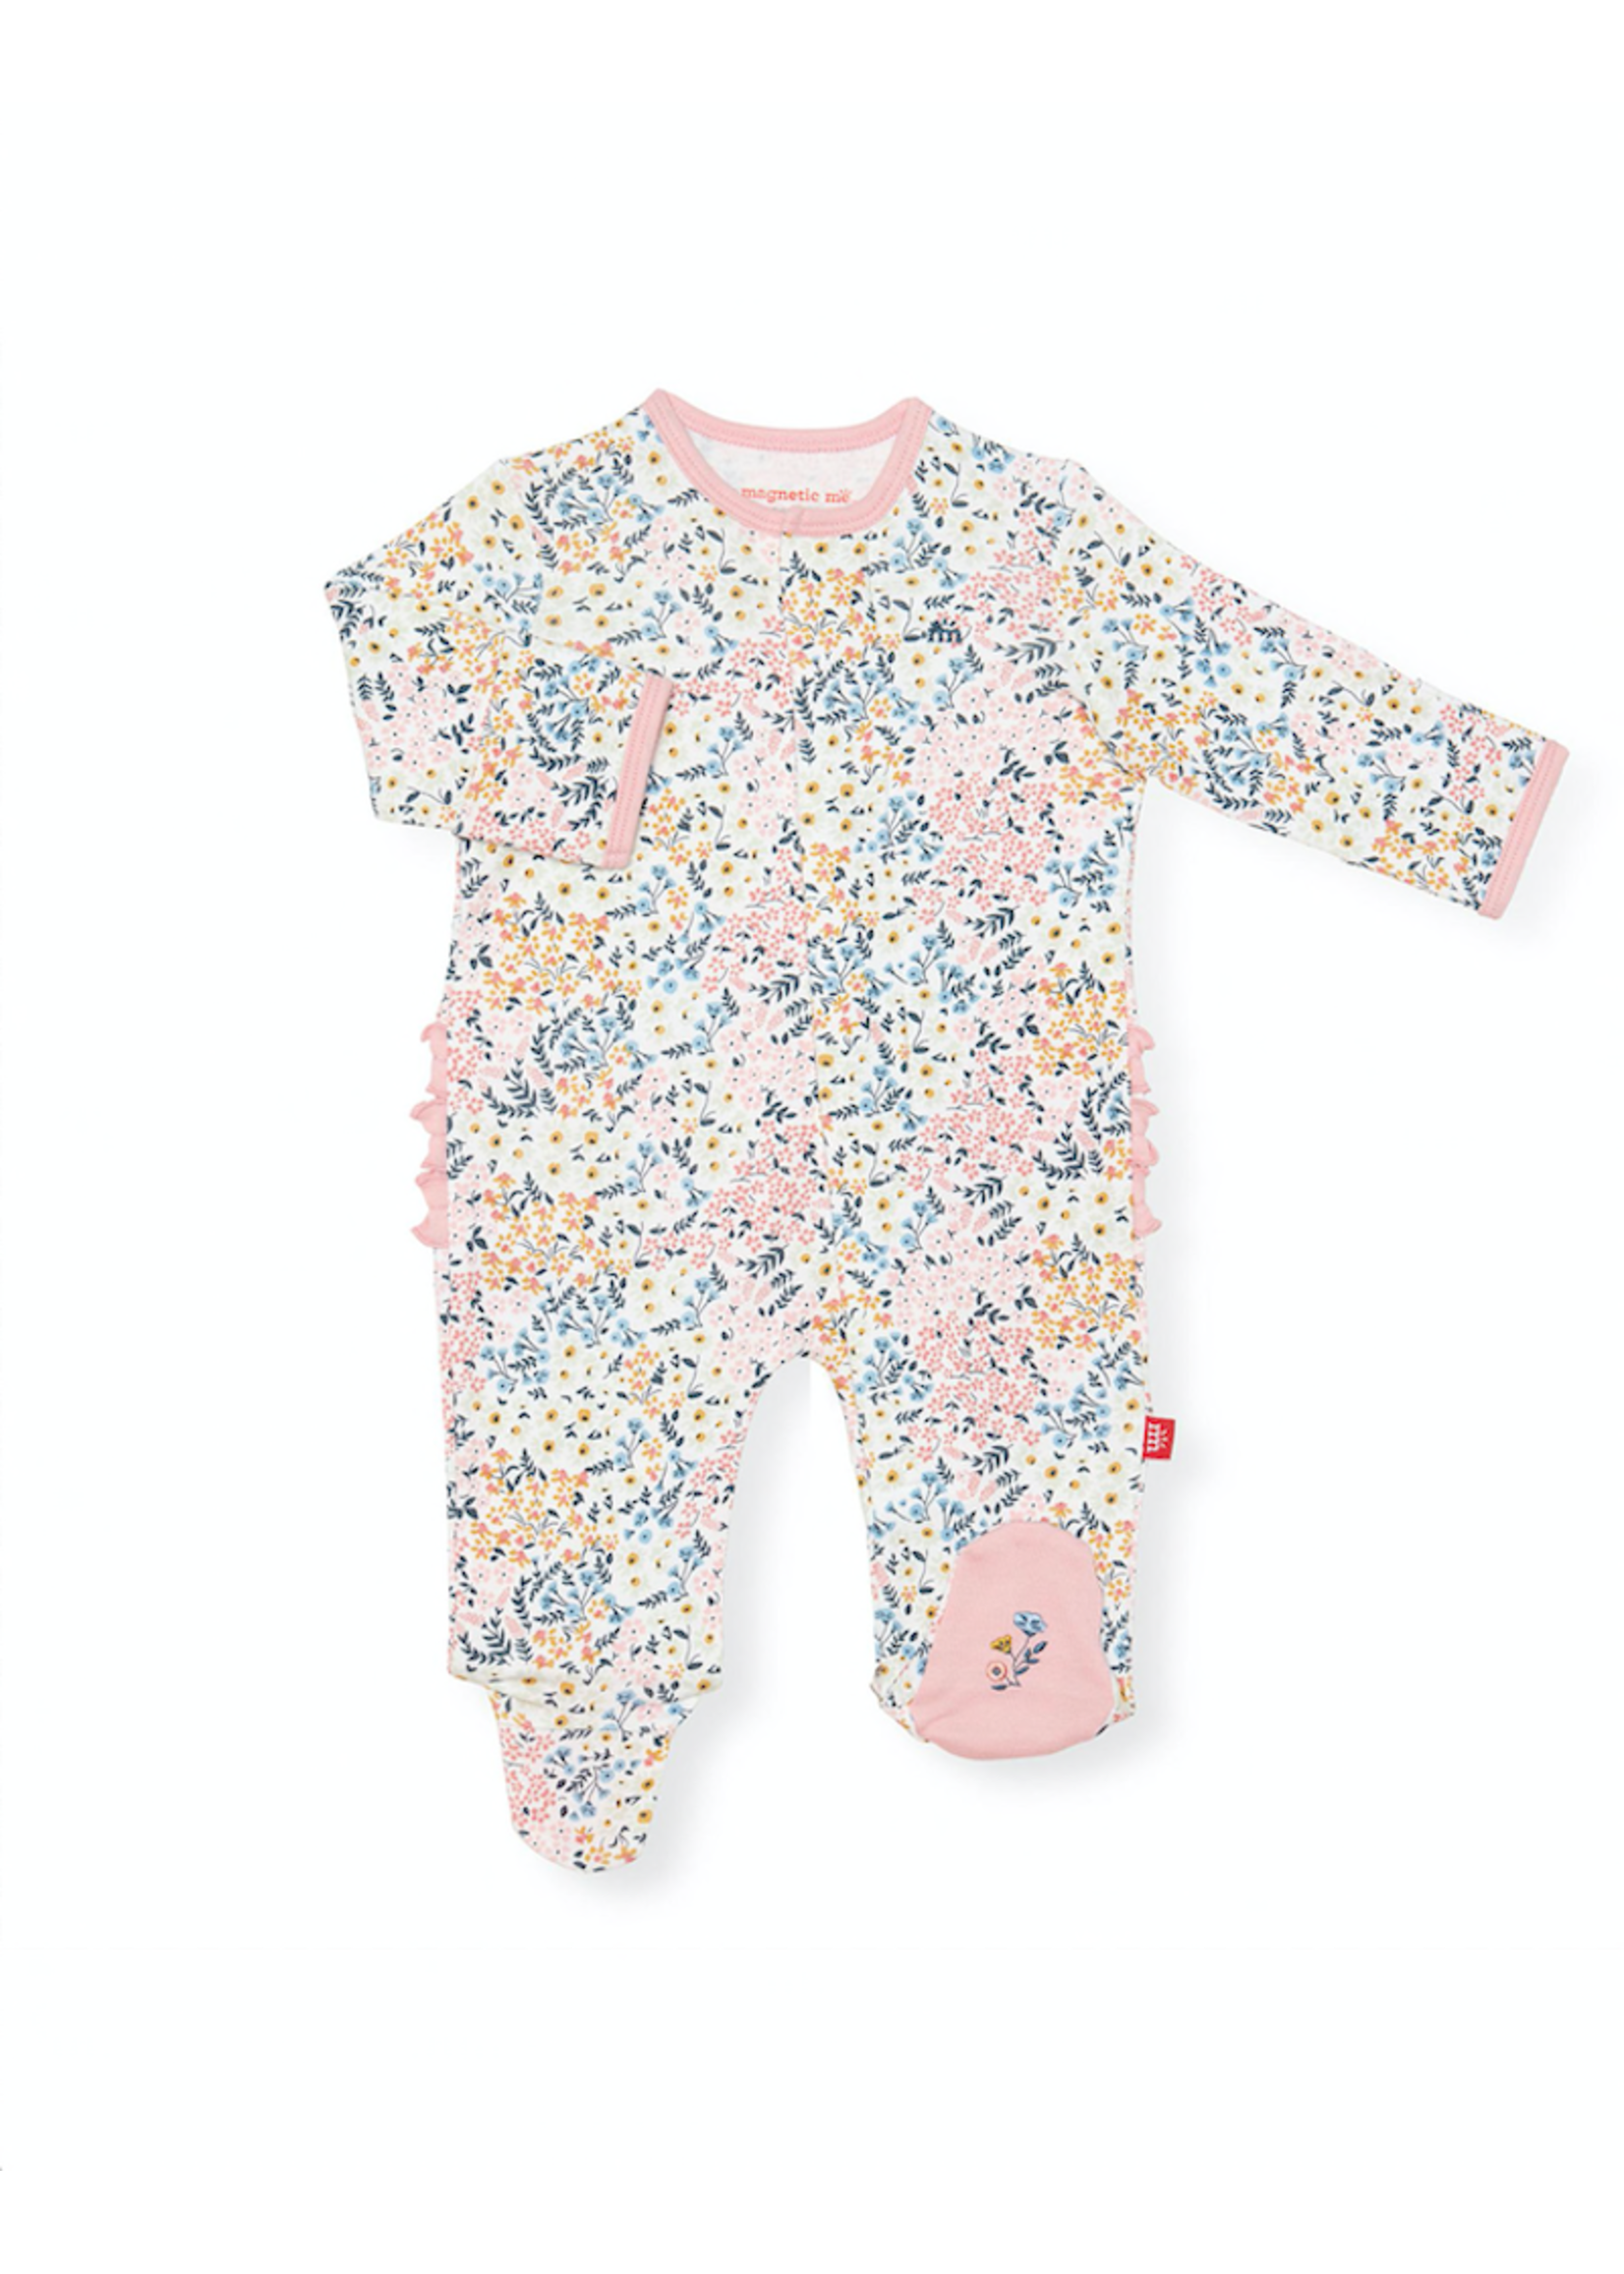 Magnetic Me Magnetic Me, Chelsea Organic Cotton Magnetic Footie